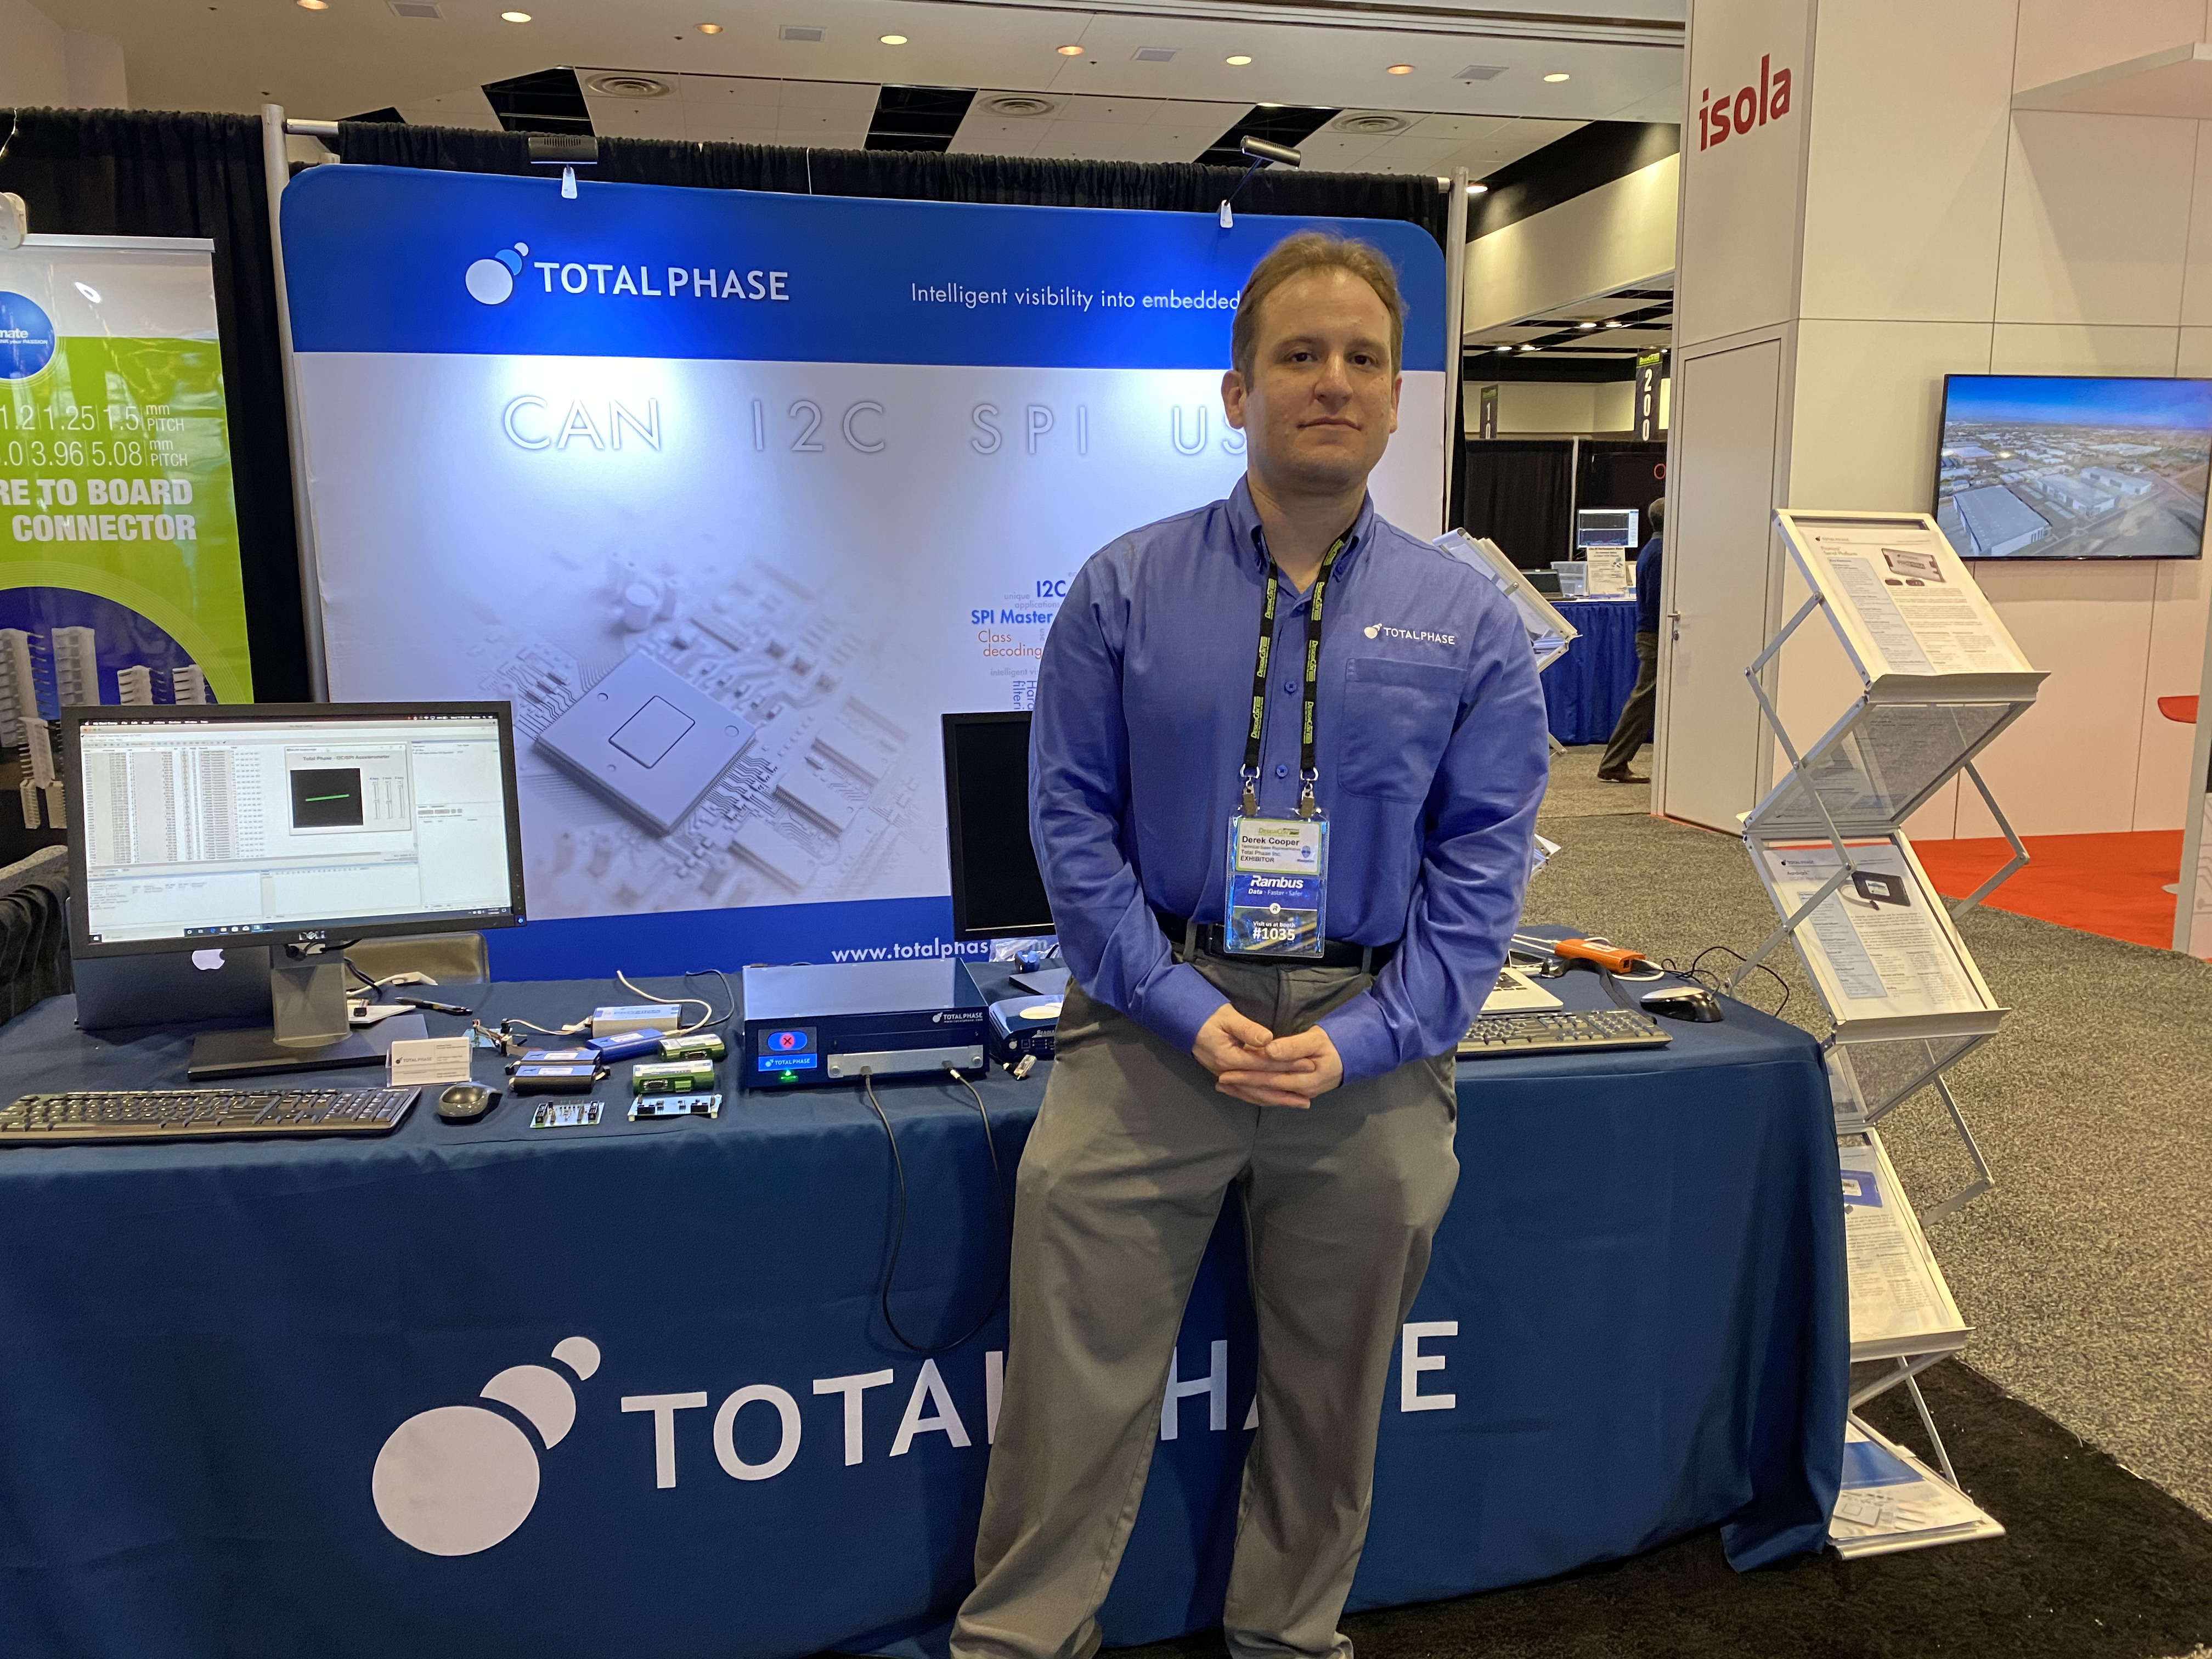 Total Phase booth and staff